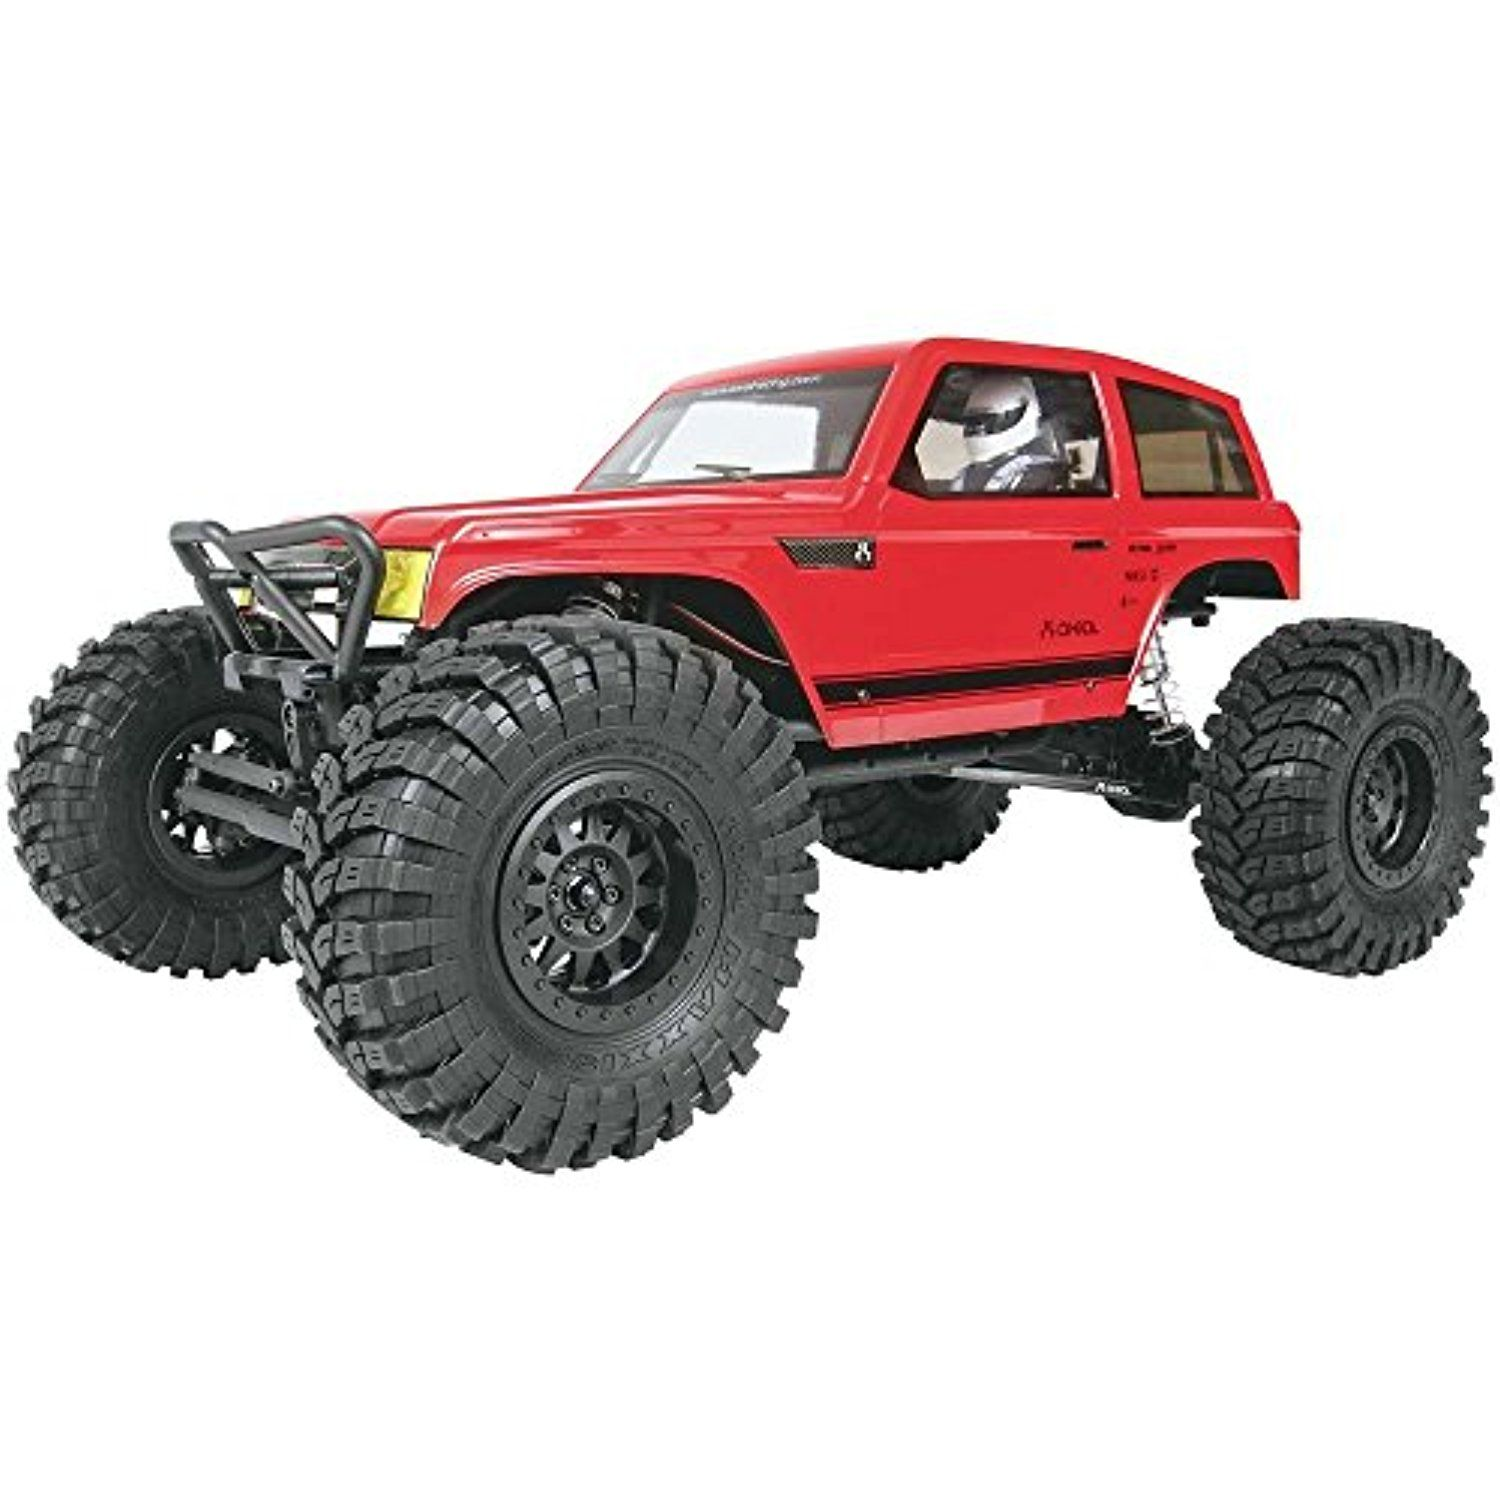 Axial Wraith Spawn 4x4 Unassembled Kit Radio Controlled 1